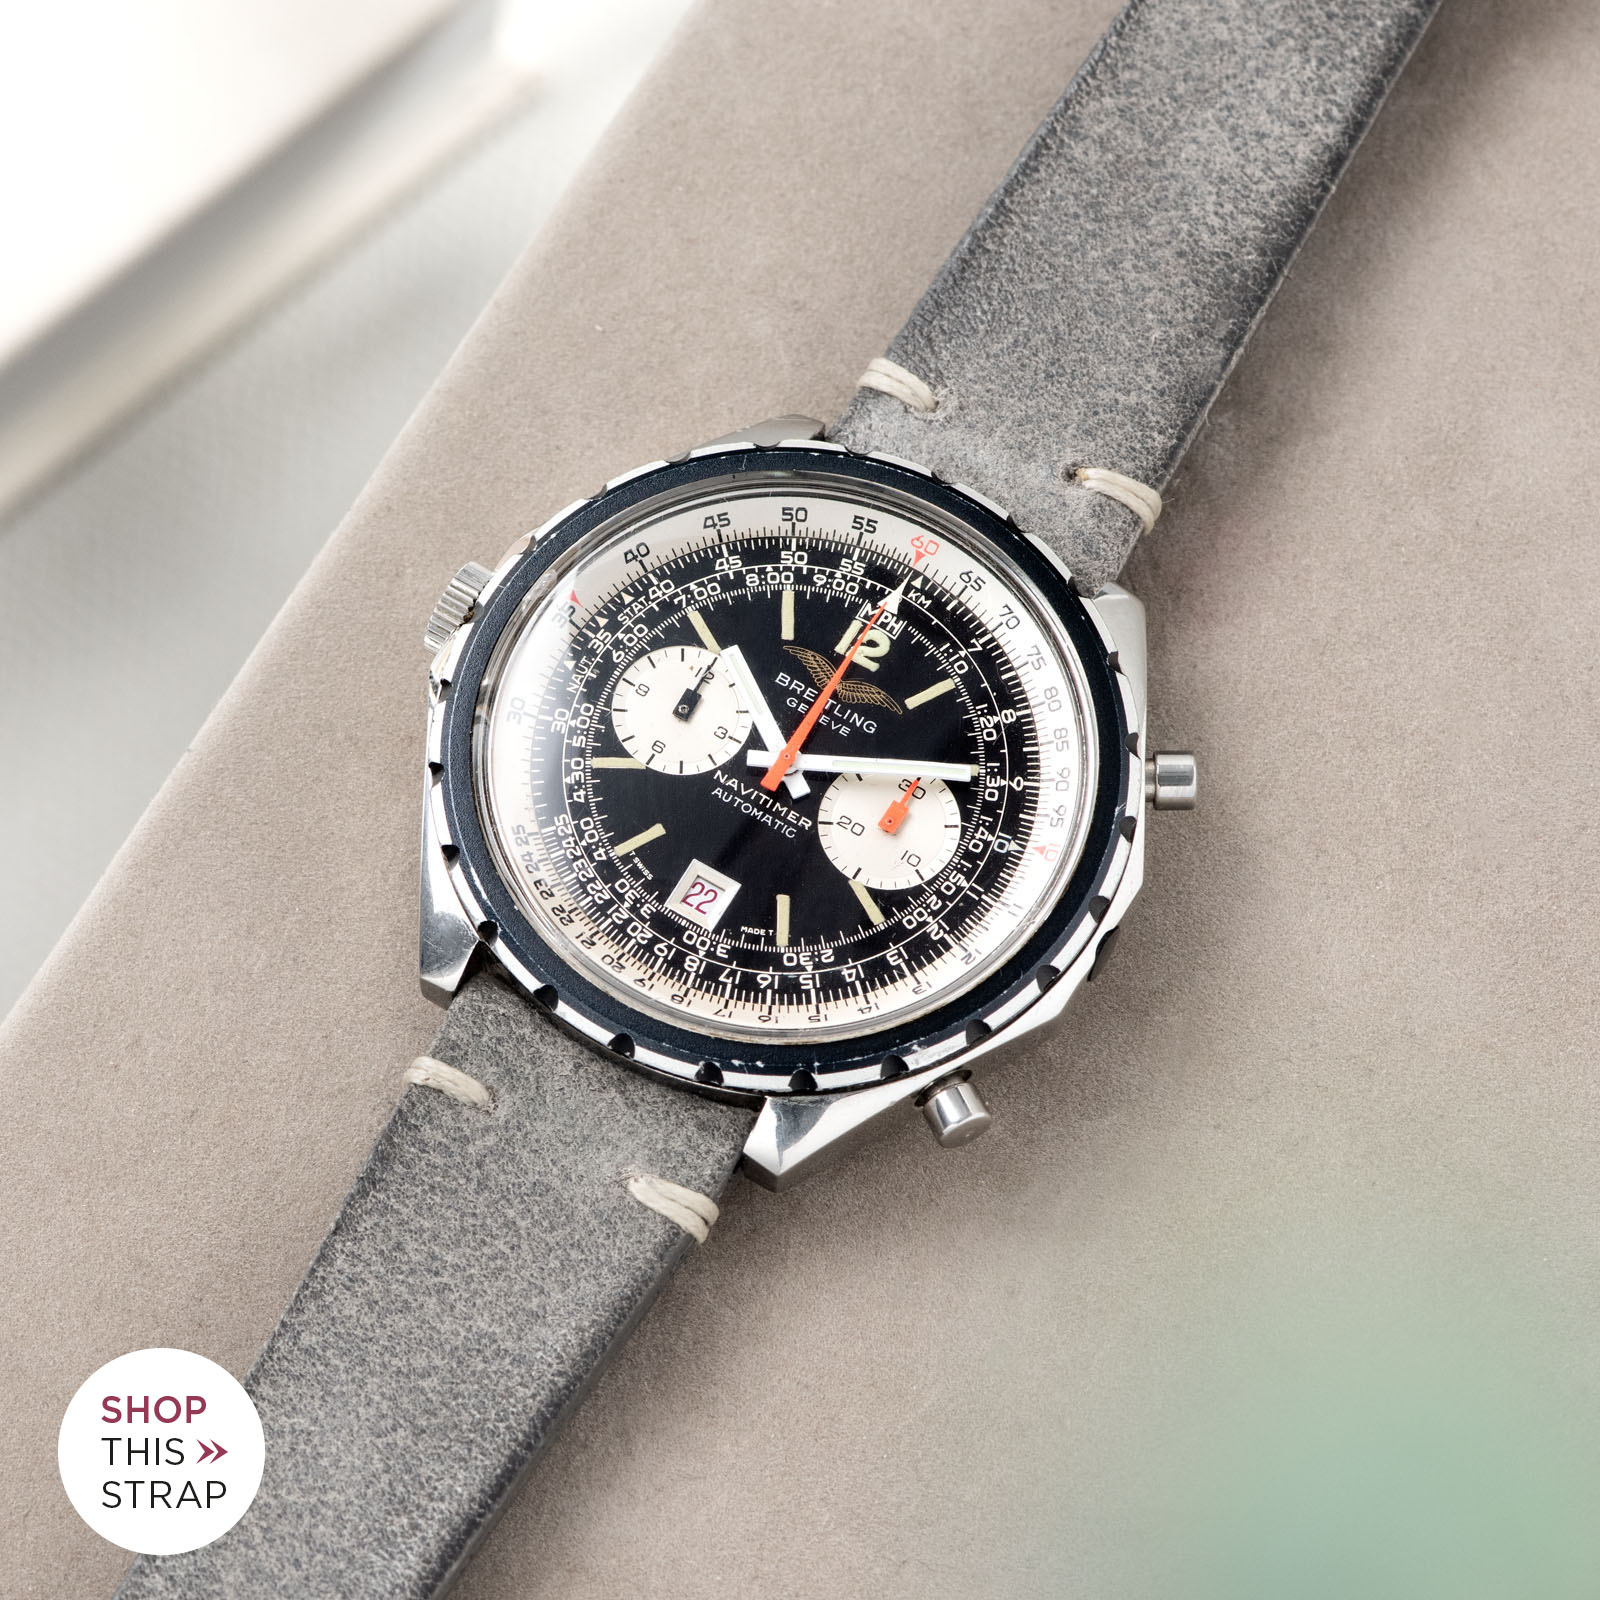 Bulang and Sons_Strapguide_Breitling Navitimer ref issued to iraqi air force ref 1806_Rugged Grey Leather Watch Strap _005